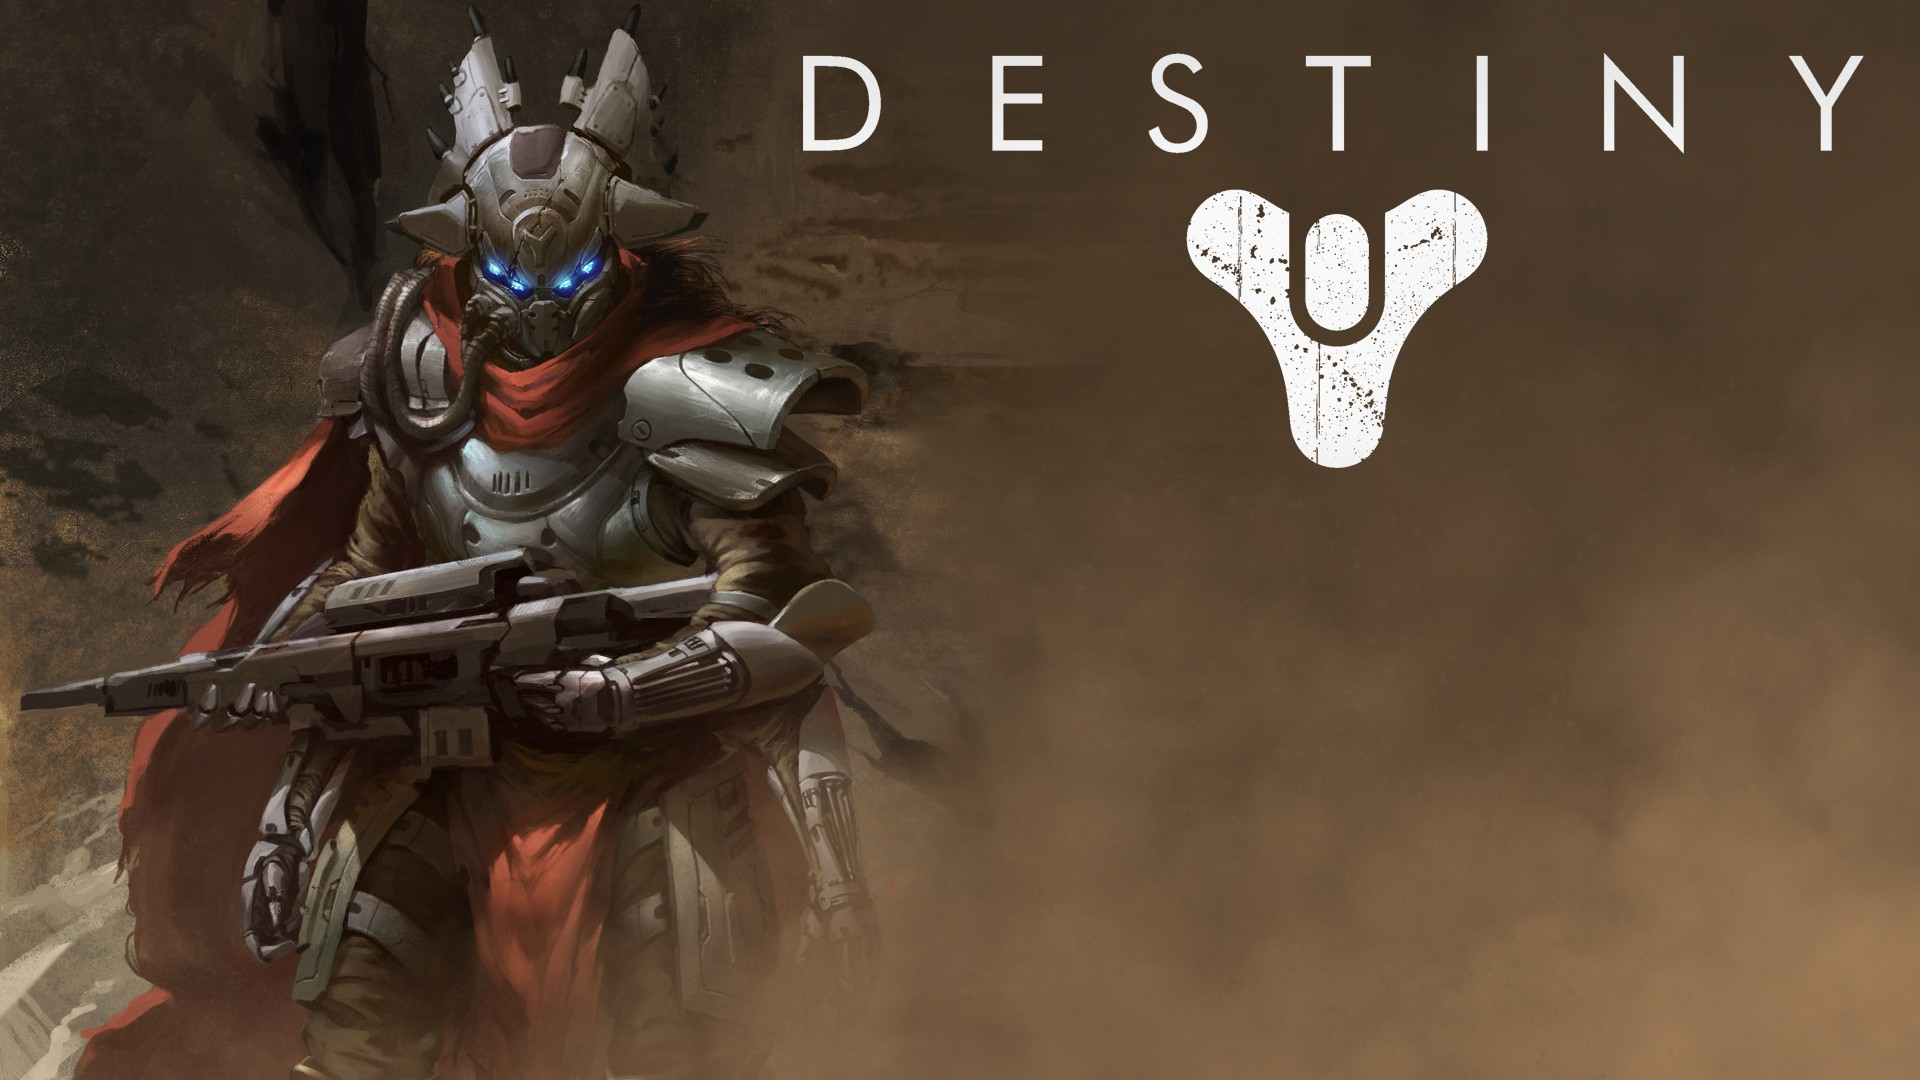 group of destiny game wallpaper hd 1080p